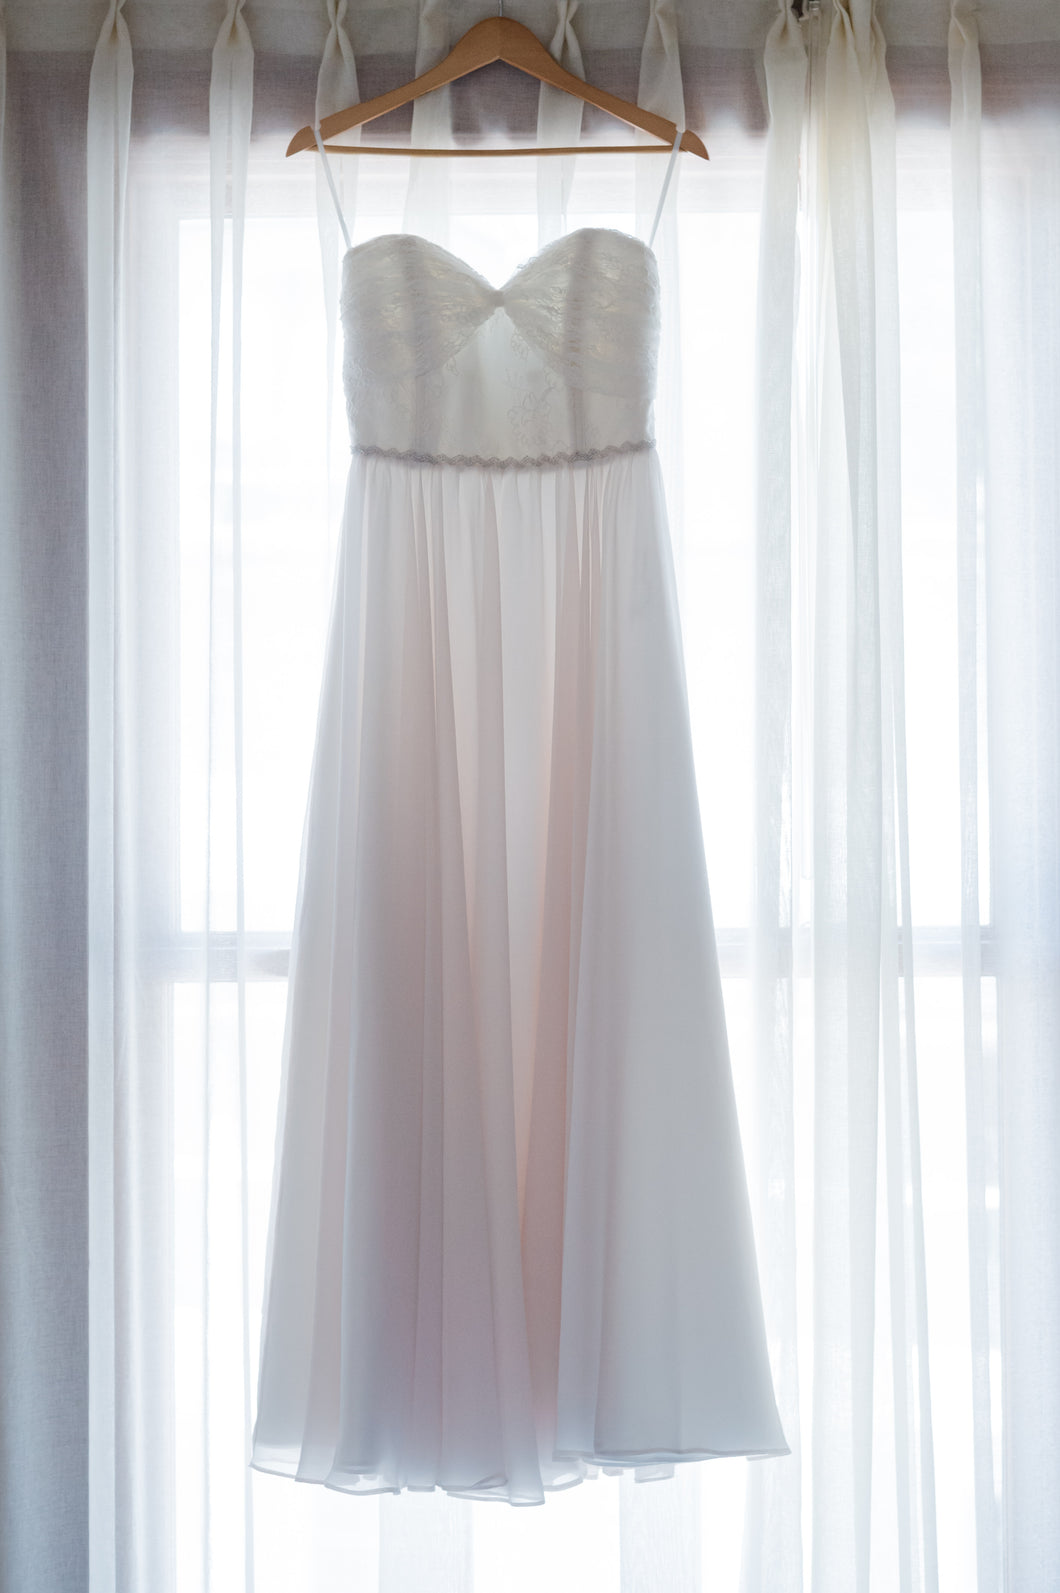 Truvelle 'Elisabeth' size 6 used wedding dress front view on hanger